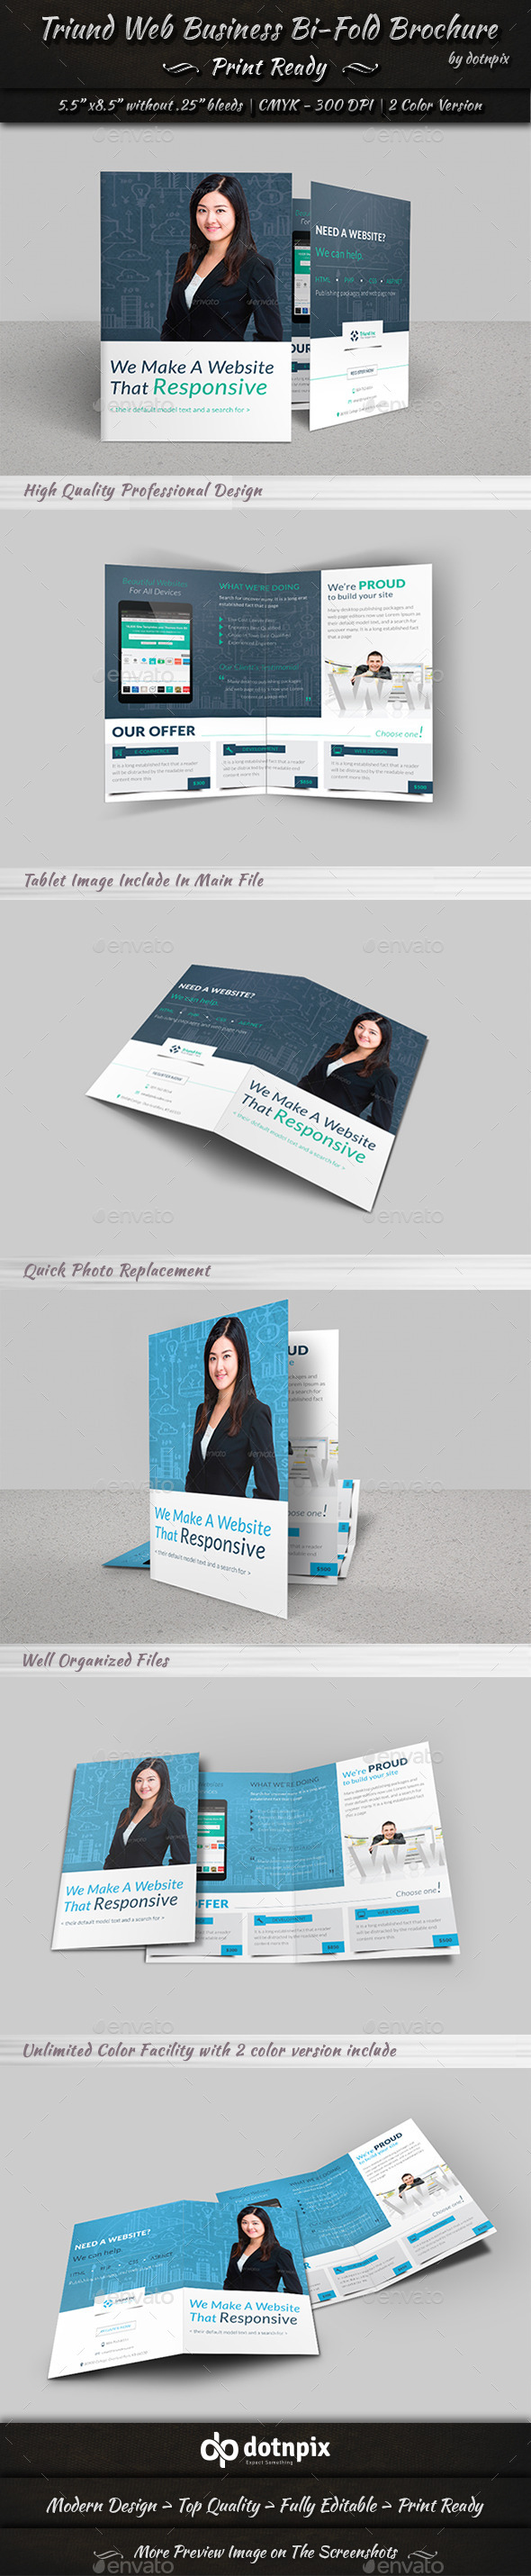 GraphicRiver Triund Web Business Bi-Fold Brochure 9571700